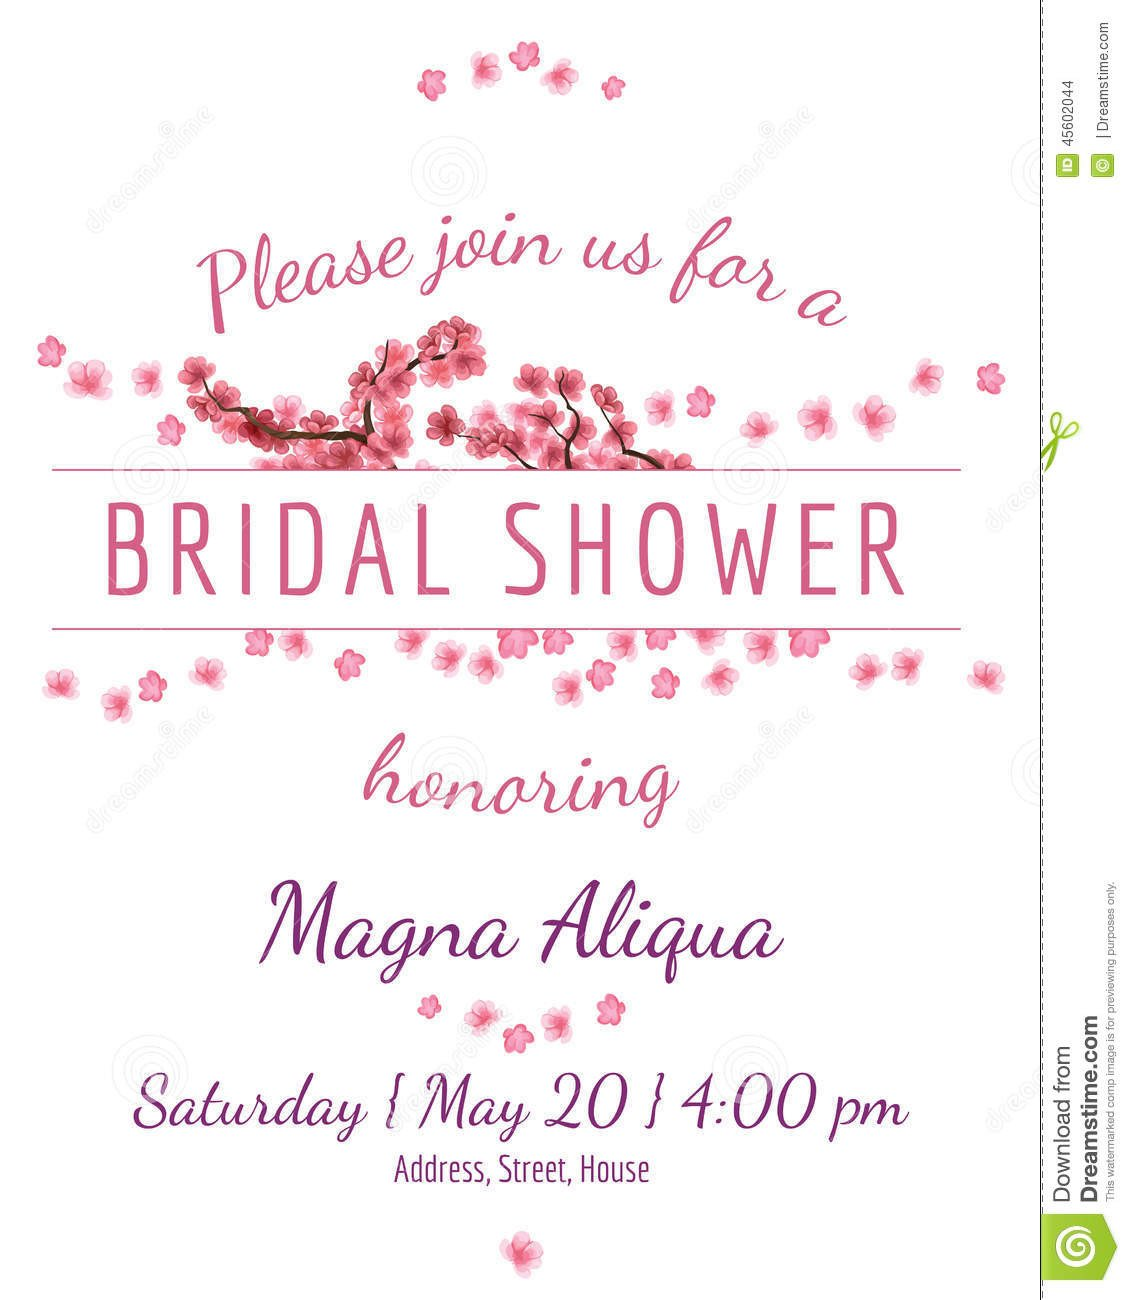 Bridal Shower Card Template Invitation Bridal Shower Card with Sakura Vector Stock